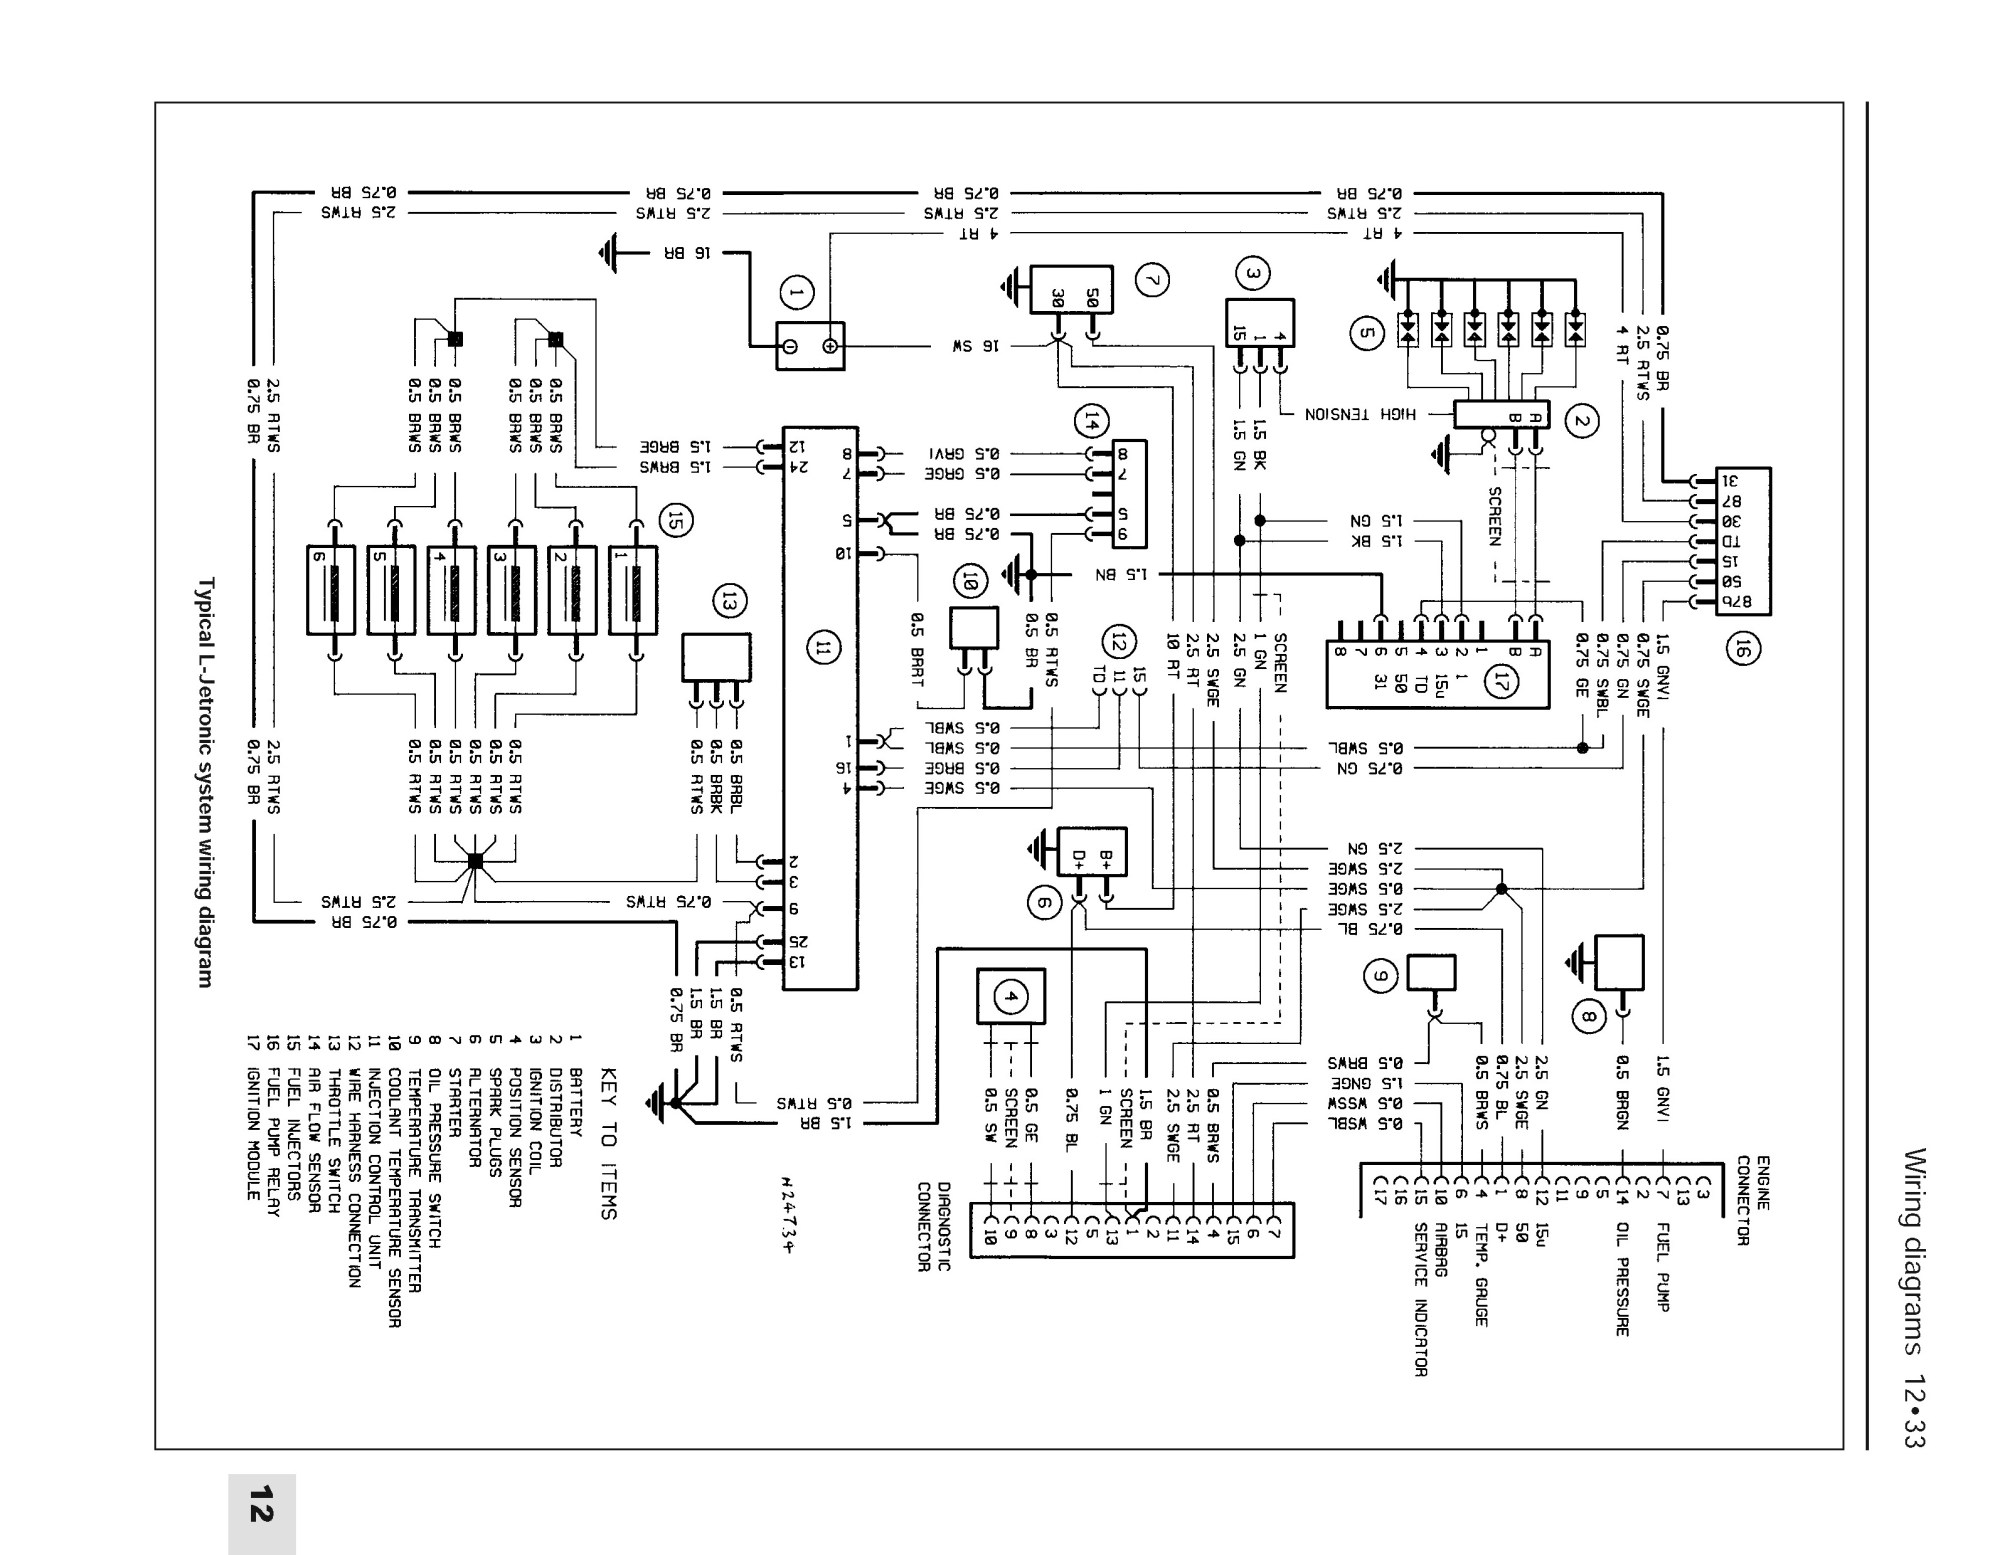 hight resolution of bmw 135 wiring diagram wiring diagrams scematic bmw x3 wiring diagram bmw 135 wiring diagram